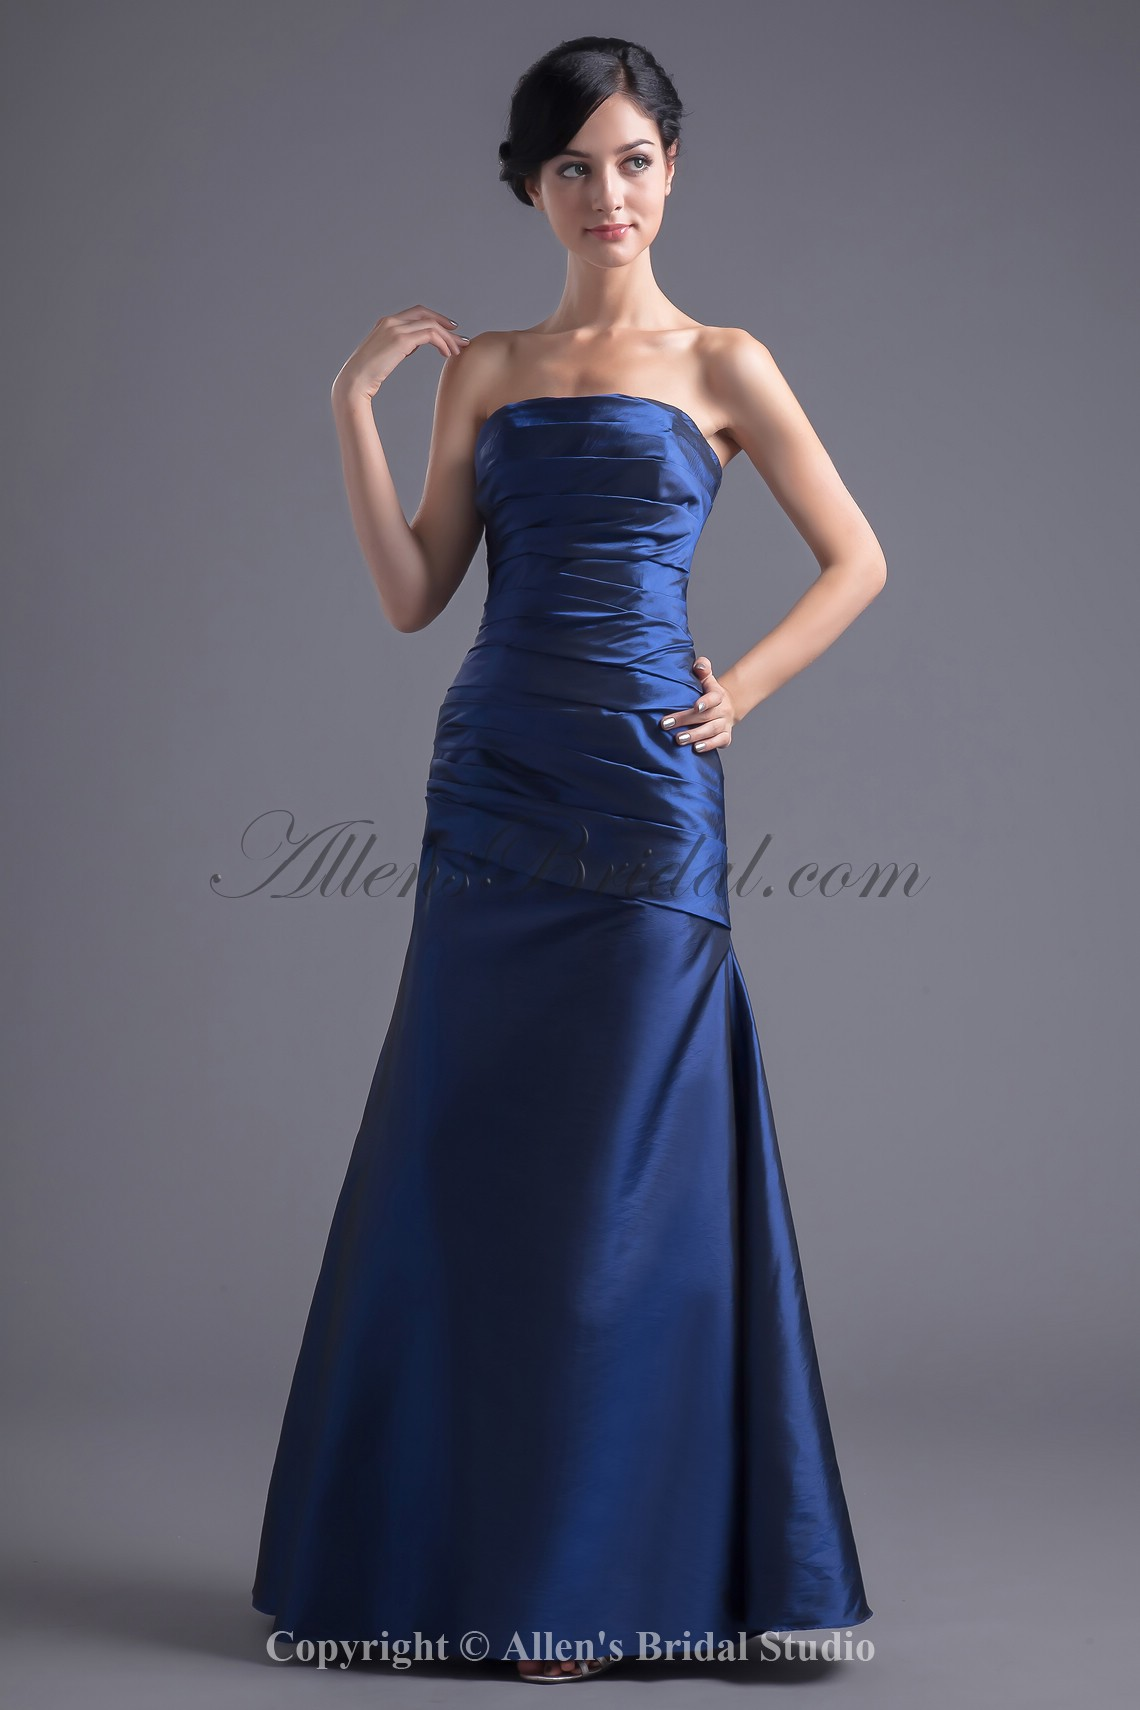 /13-99/taffeta-straless-neckline-a-line-floor-length-directionally-ruched-prom-dress.jpg